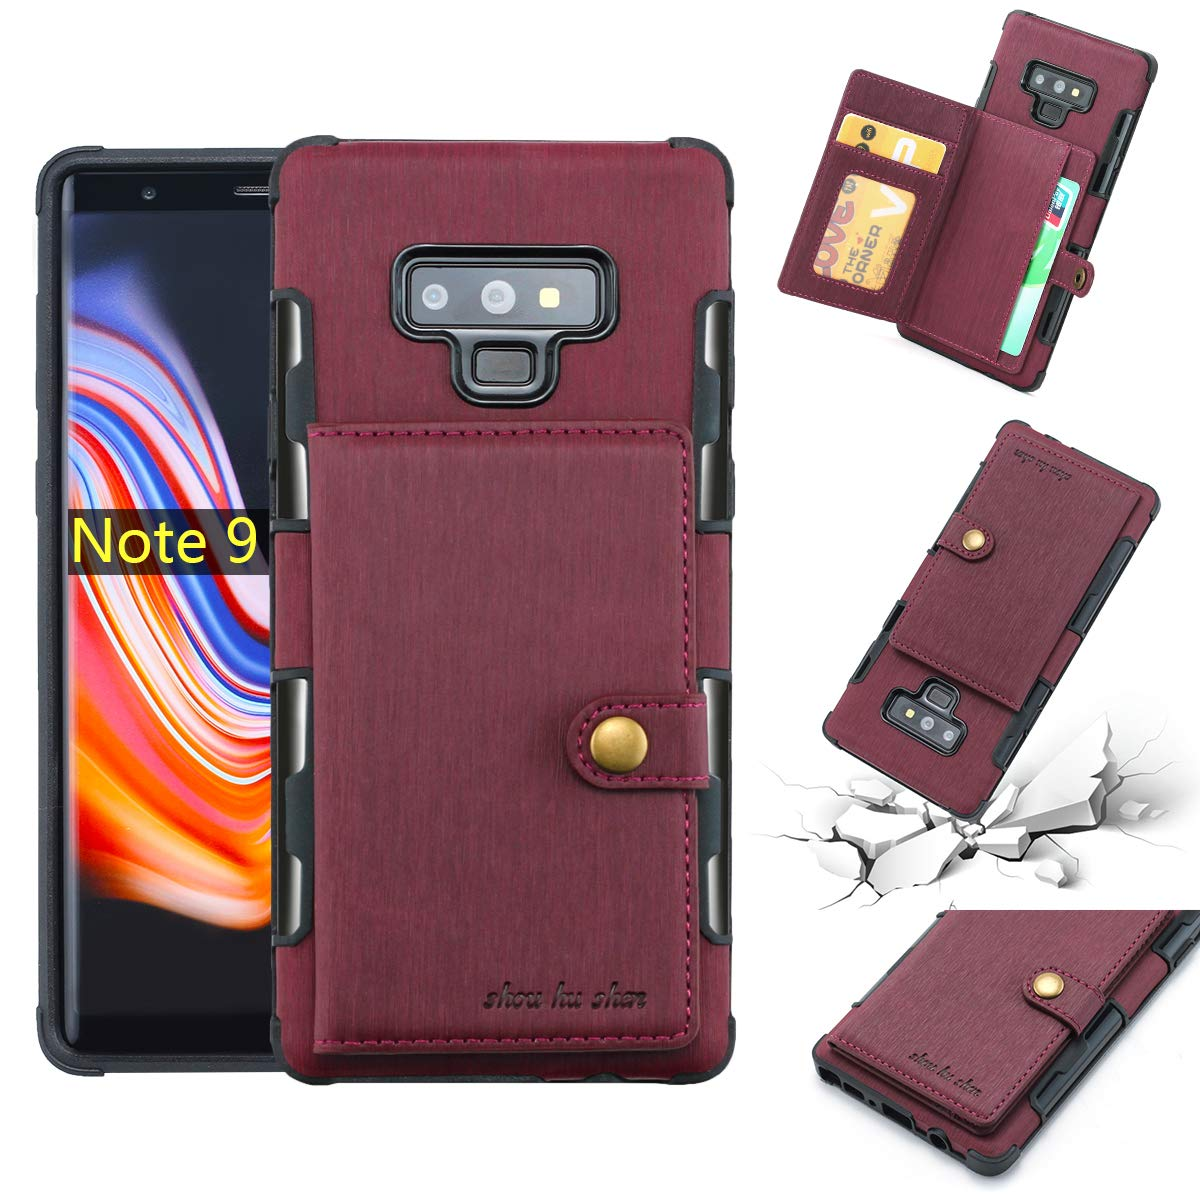 DAMONDY Galaxy Note 9 Case,Luxury Brushed Wallet Card Holders Slot Design Cover Soft Shockproof Bumper Premium Leather Magnetic Protective Case for Samsung Galaxy Note 9 (2018)-Wine red by DAMONDY